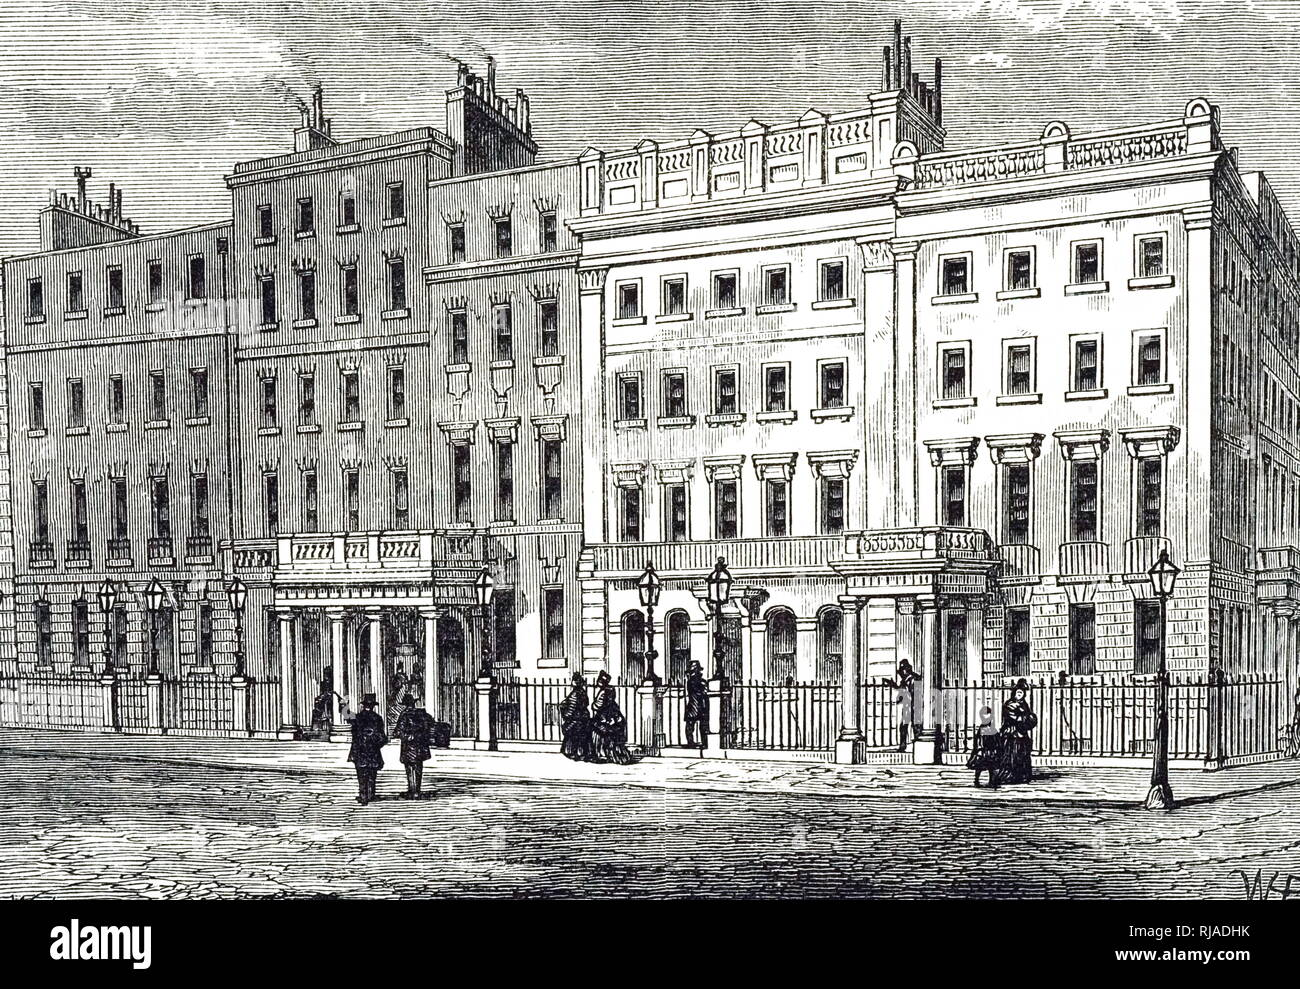 An engraving depicting the exterior of Claridge's a 5-star hotel at the corner of Brook Street and Davies Street in Mayfair, London. Dated 19th century - Stock Image